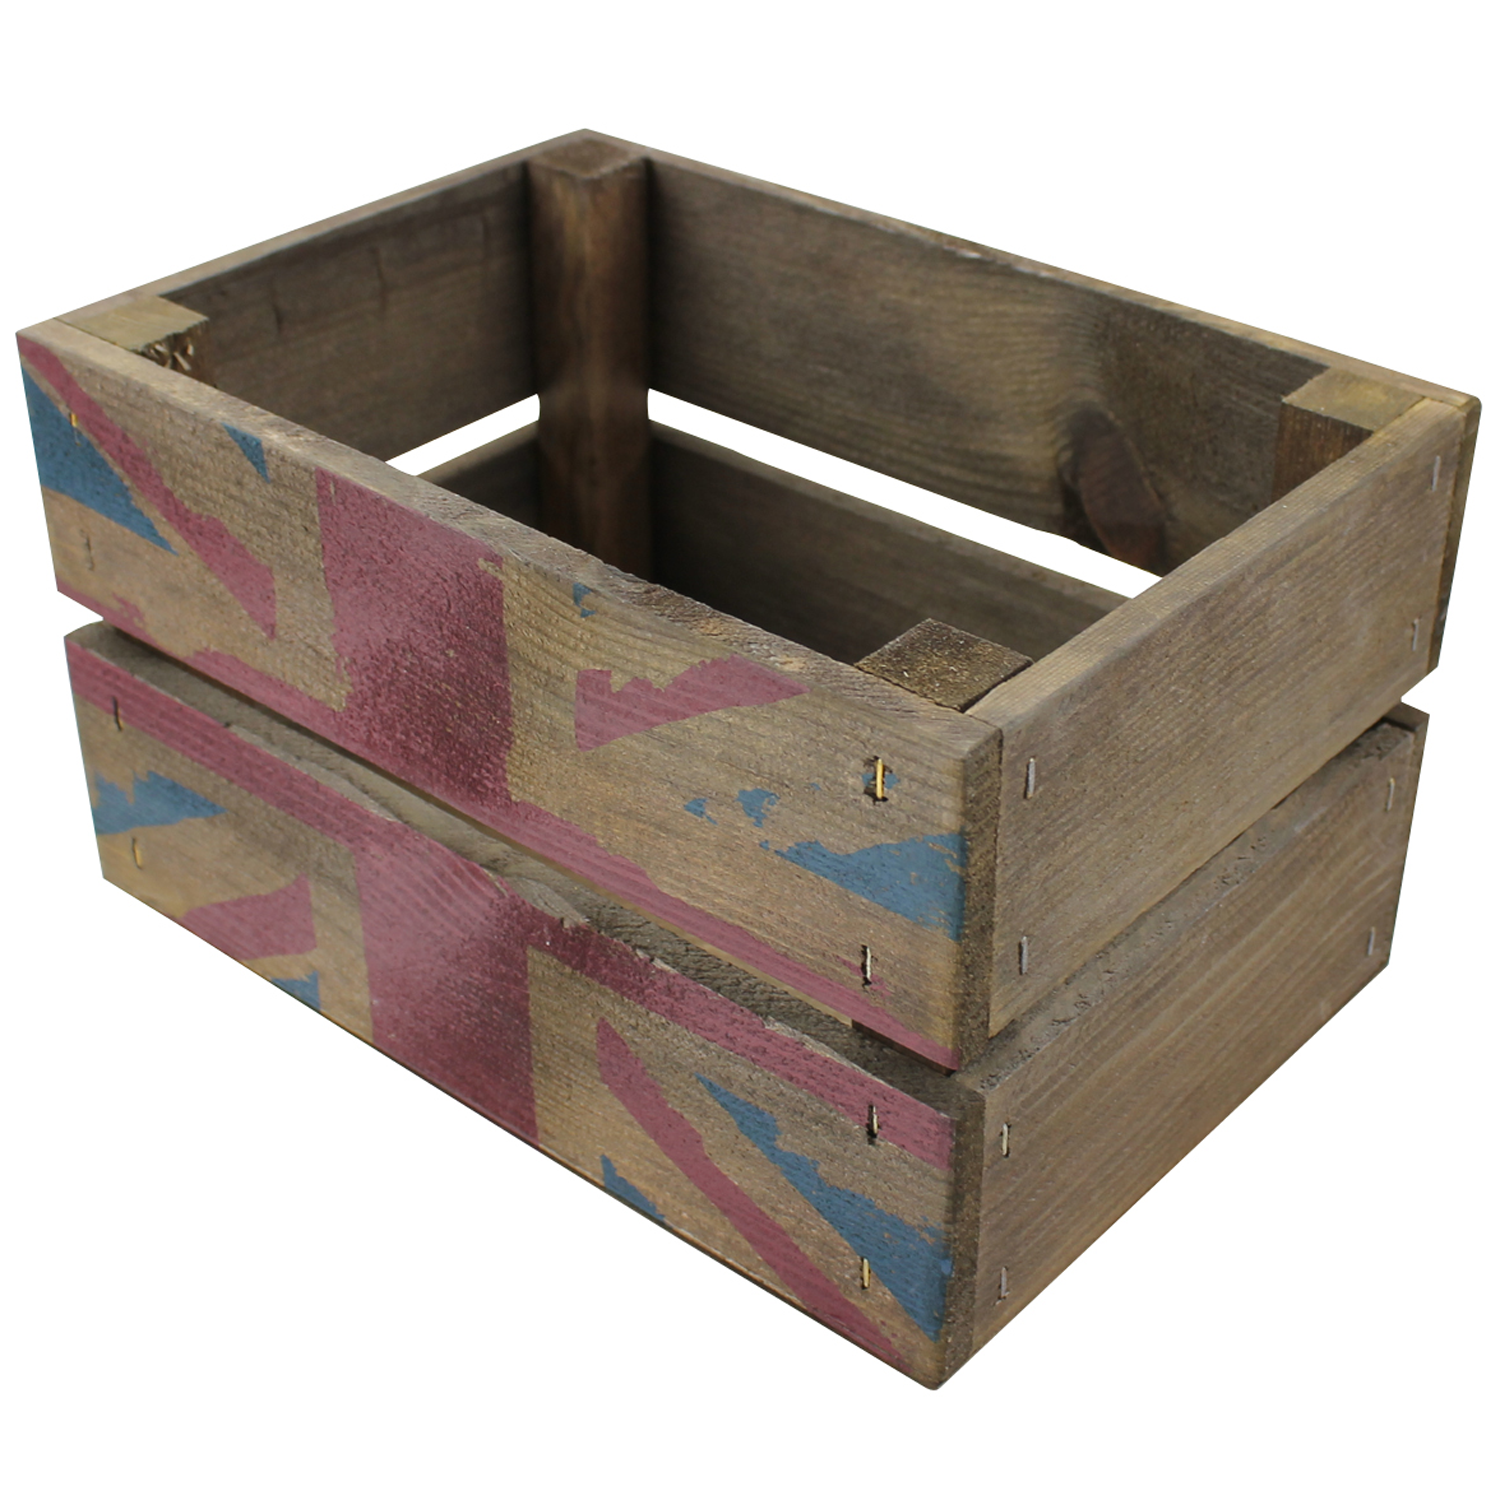 Our Mini Union Jack Rustic Crate Made And Printed By Our Sister Company Woodenboxuk Wooden Wine Boxes Wooden Crates Crates